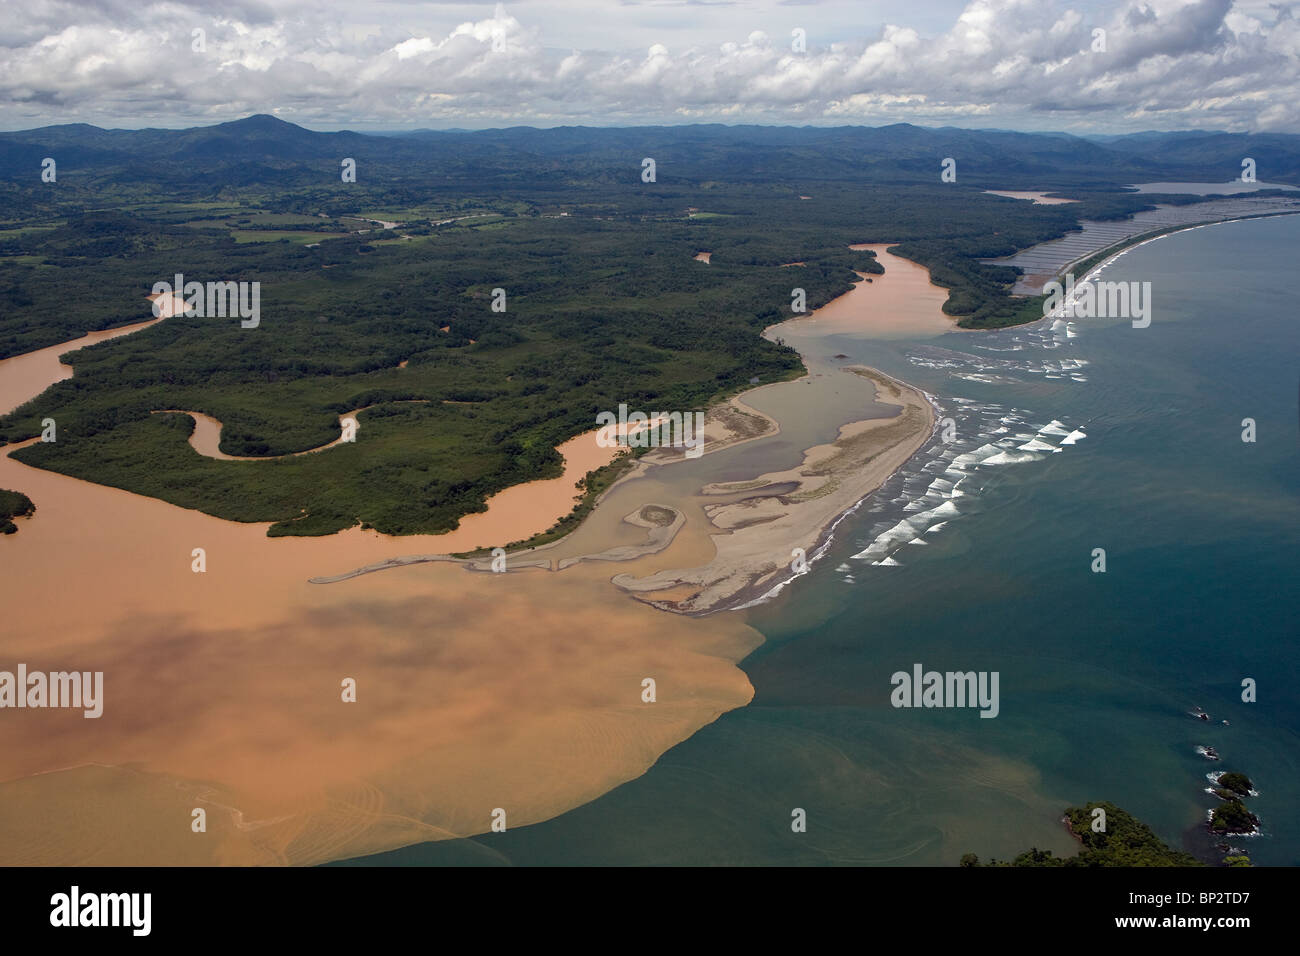 aerial view above sediment filled muddy river flowing into Pacific ocean Republic of Panama - Stock Image